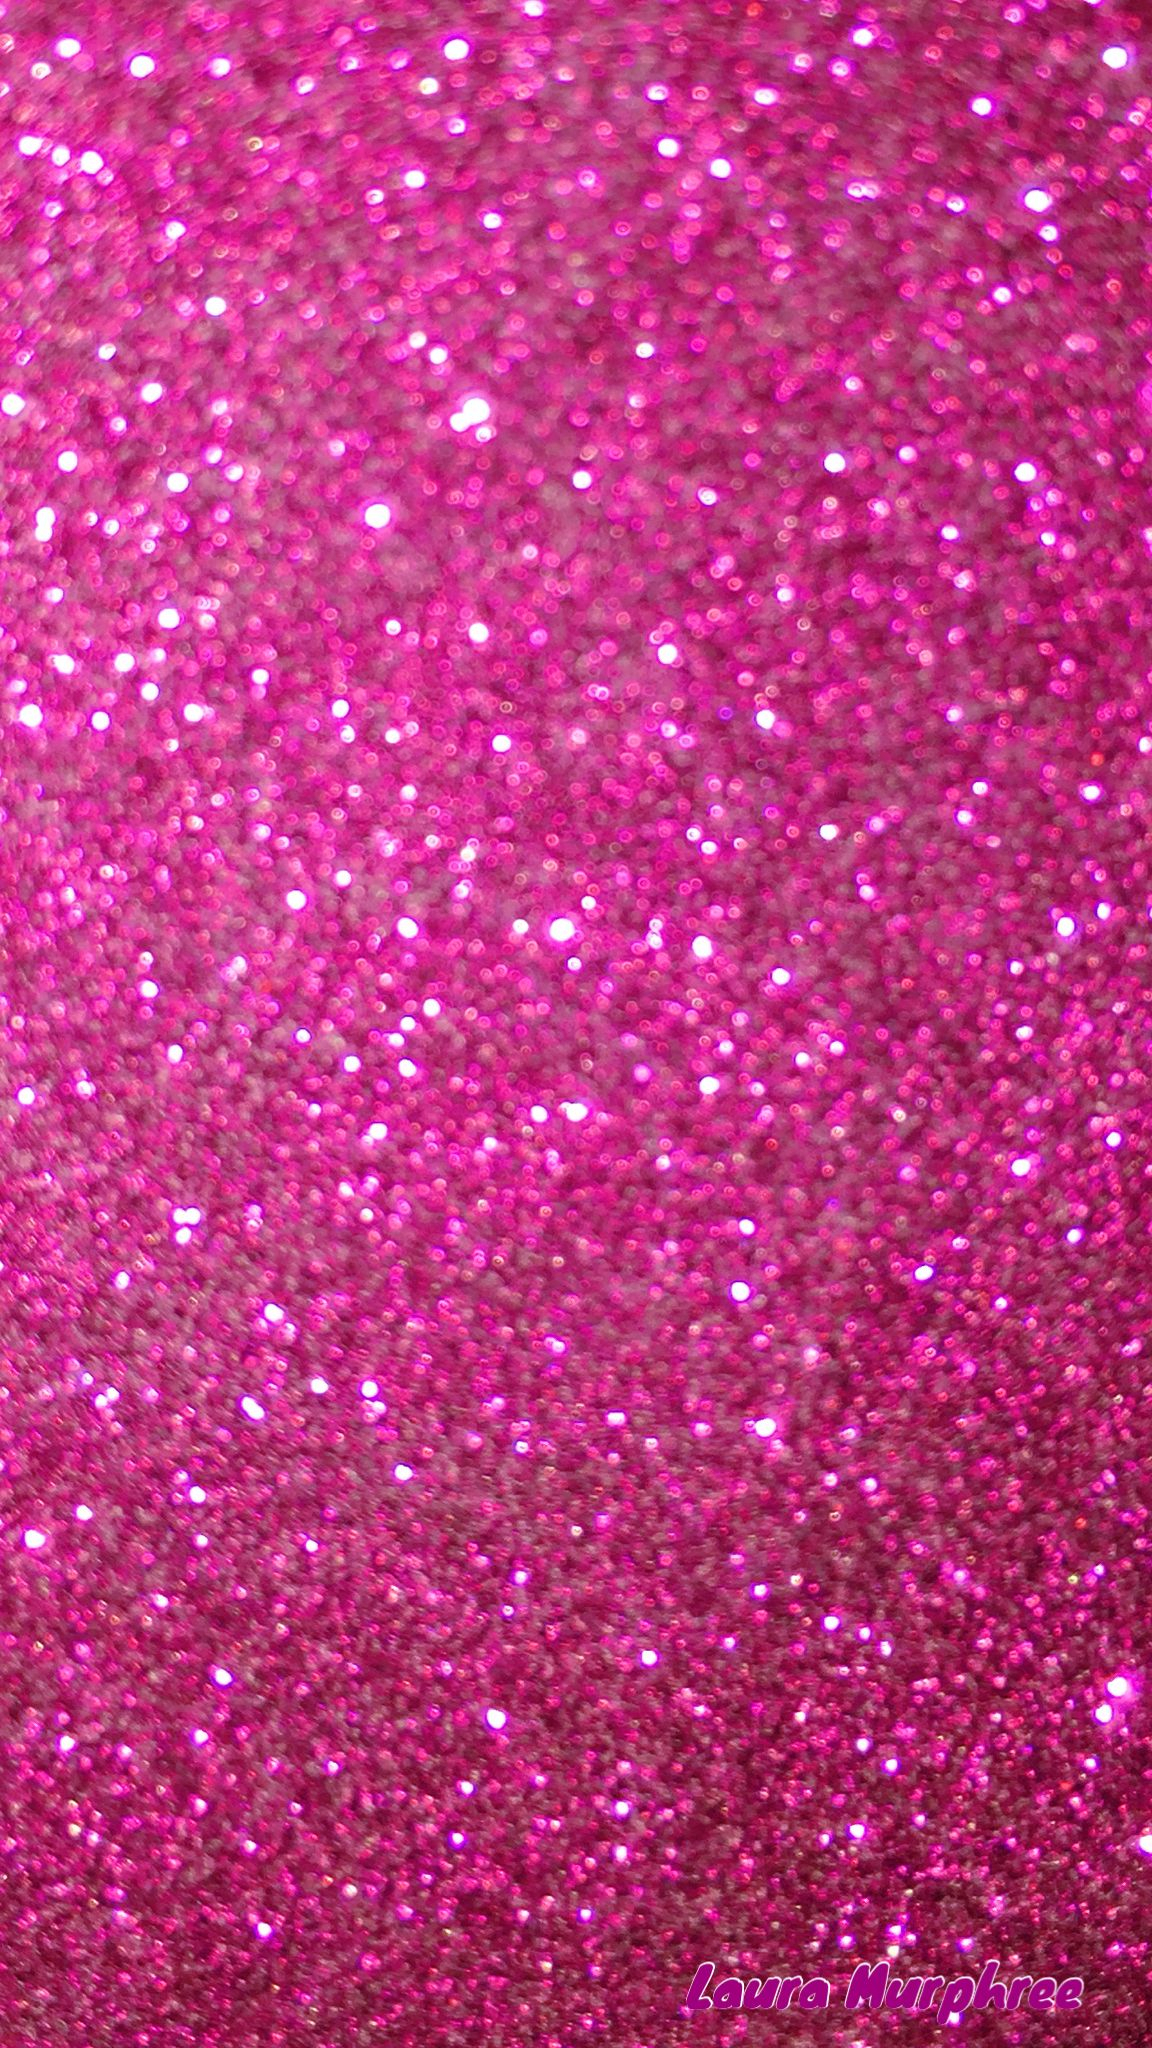 glitter phone wallpaper pink sparkle background sparkling glittery